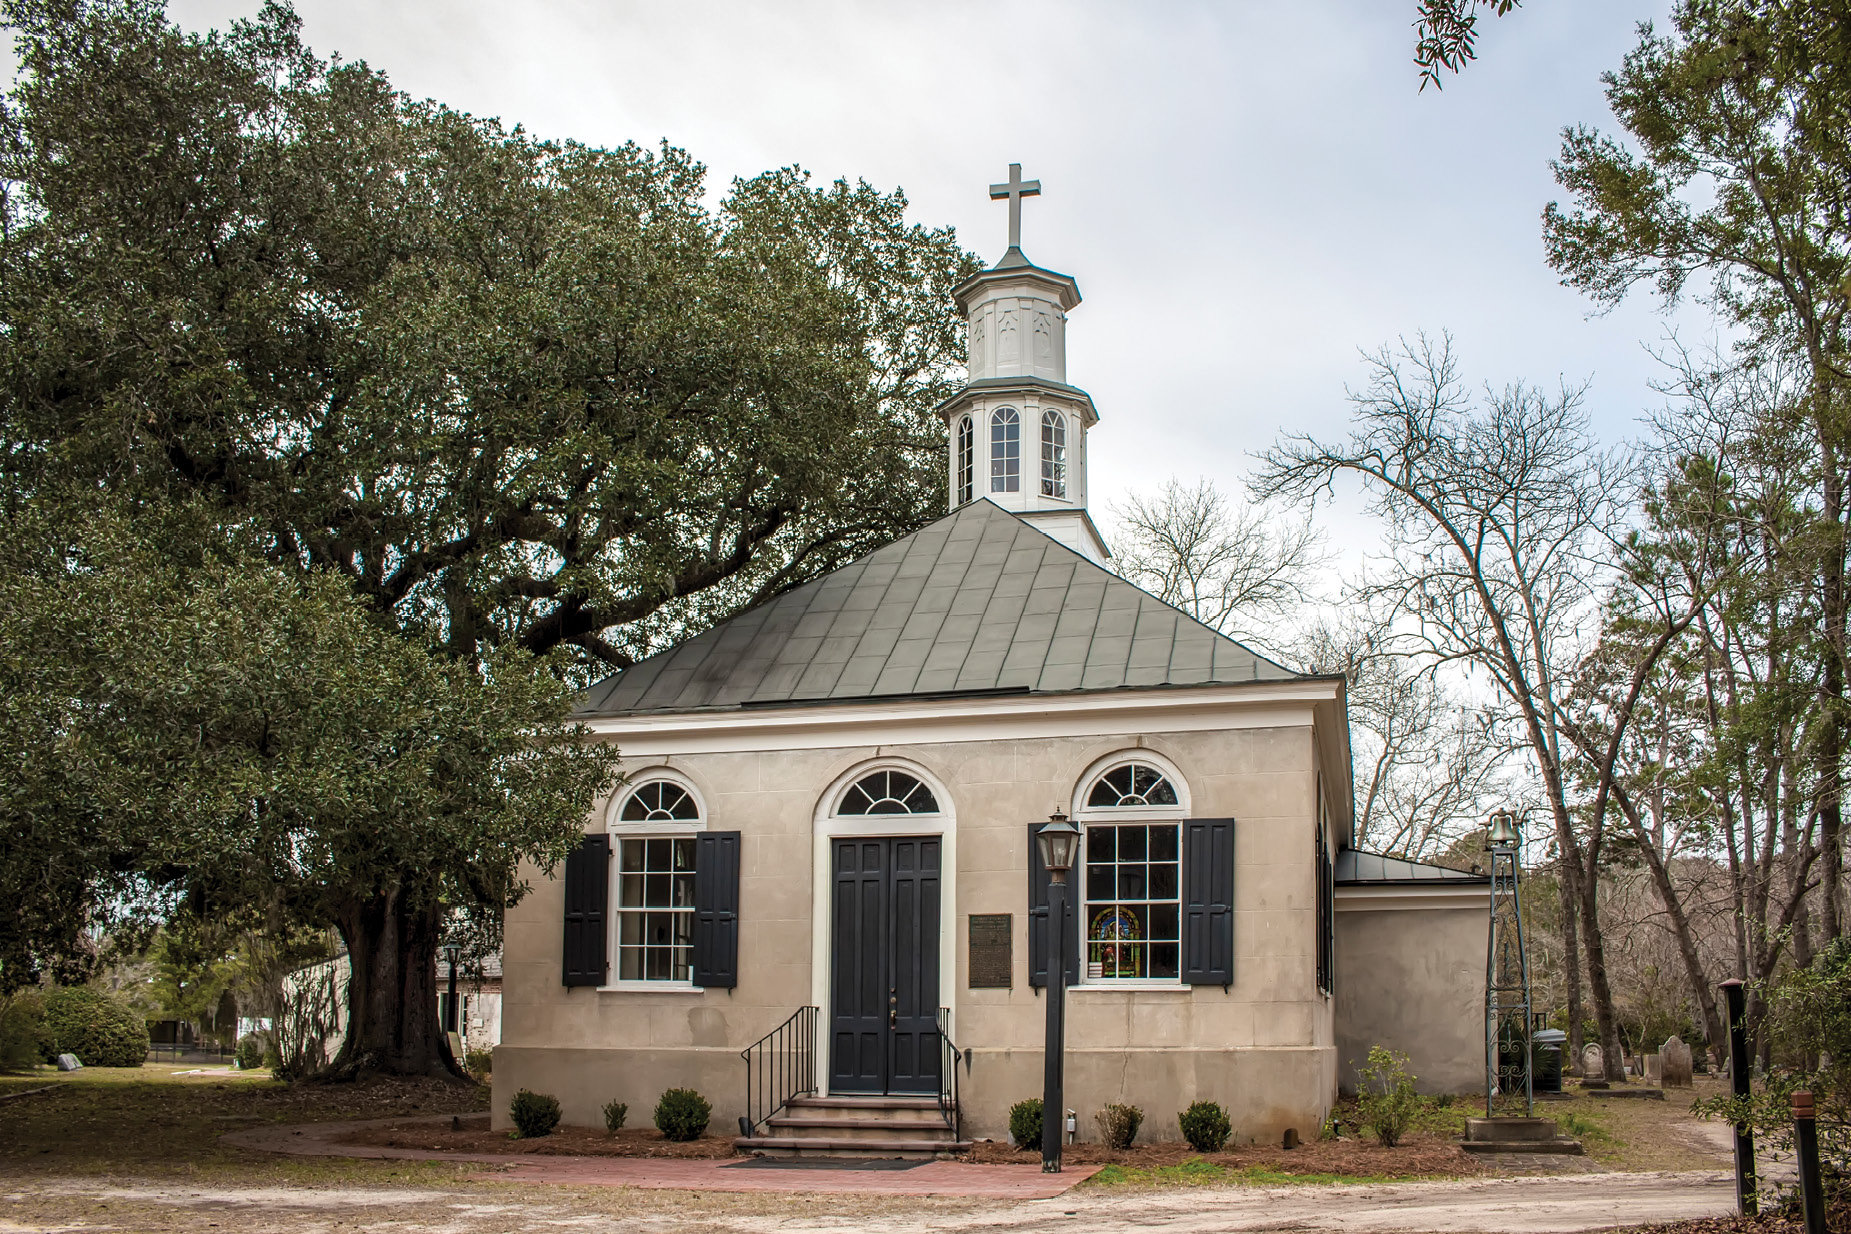 Christ Church near Snee Farm was established as the main house of worship for the parish East of the Cooper River.